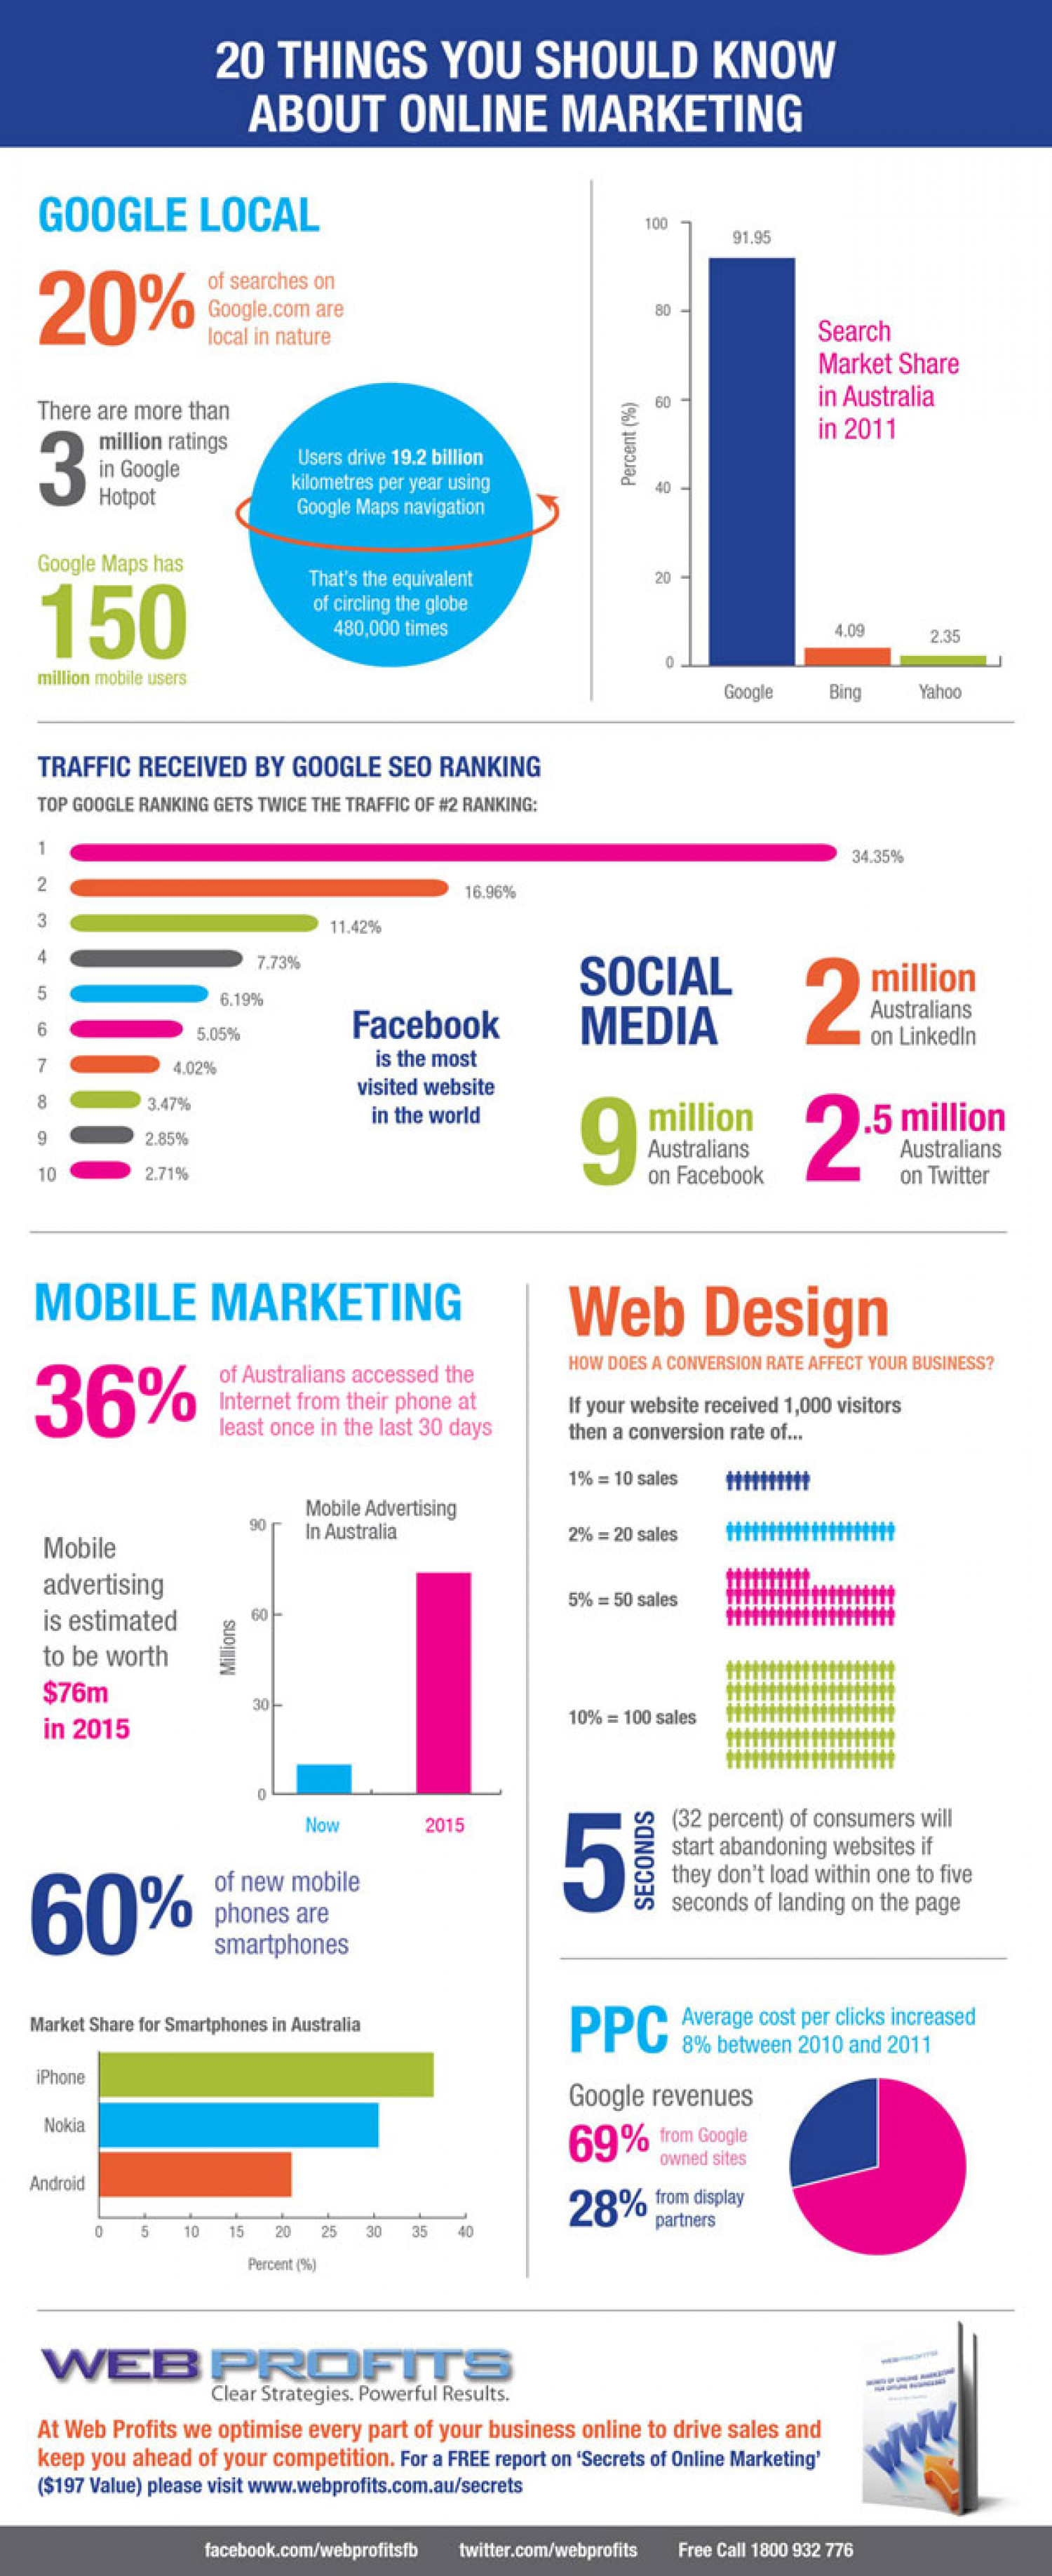 20 Things You Should Know About Online Marketing Infographic